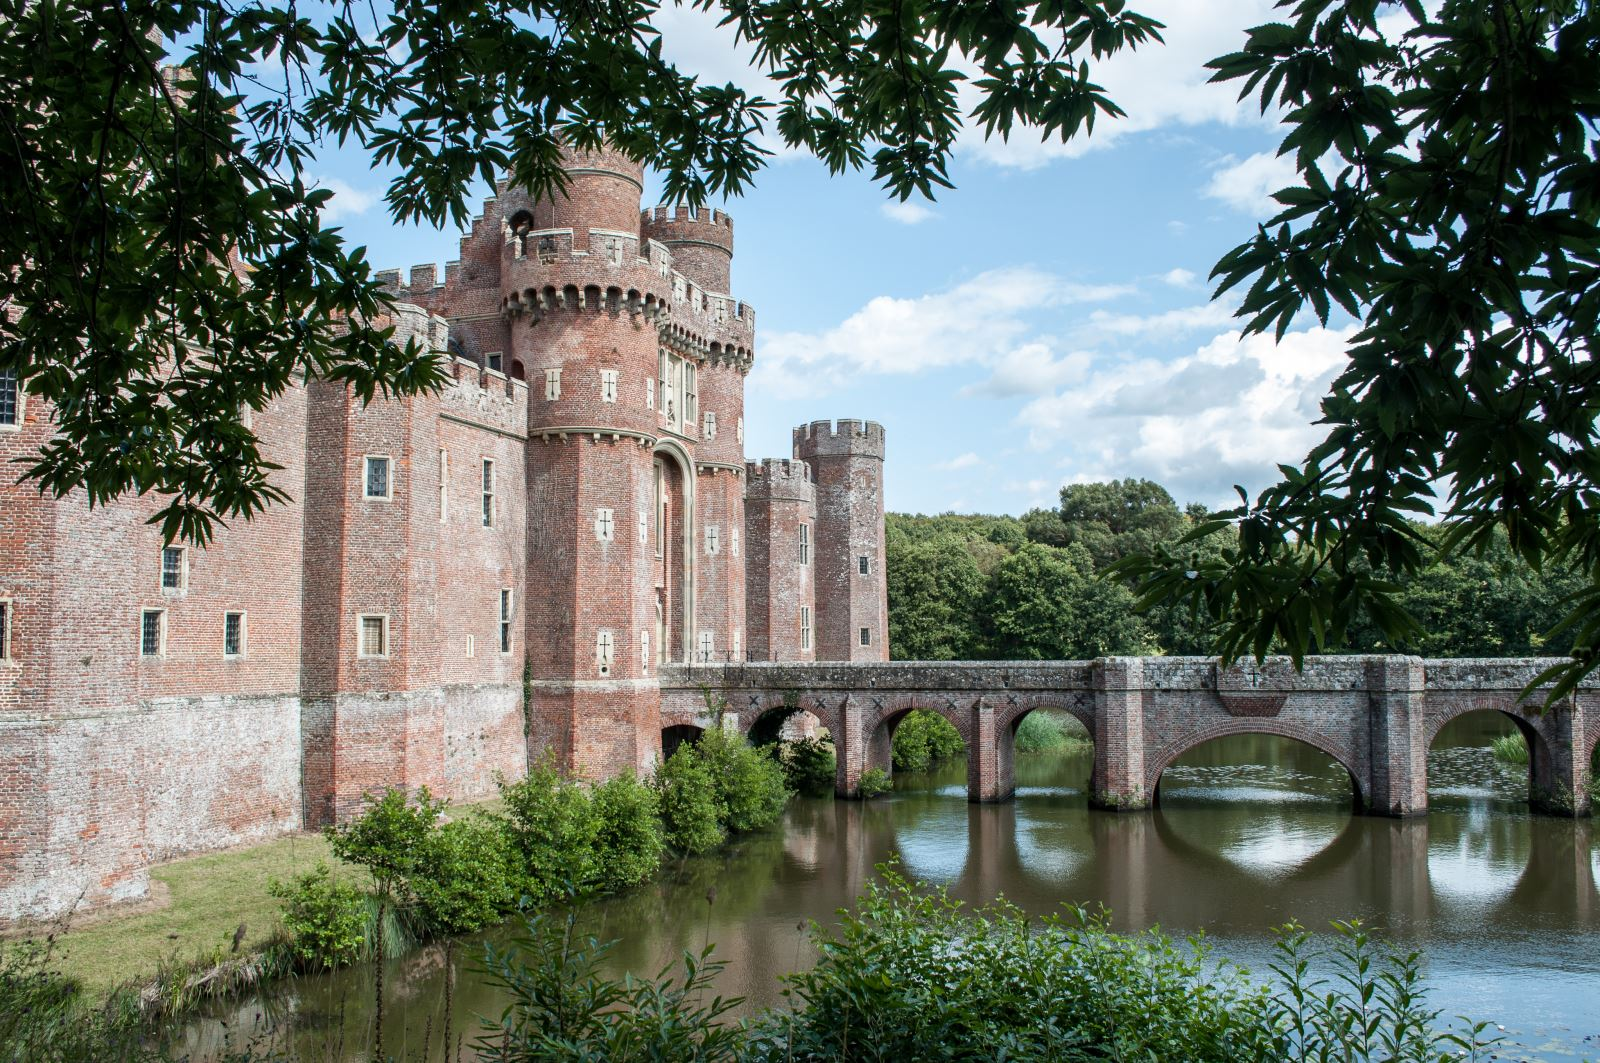 Herstmonceux Castle by Suzanne Jones of Sussex Bloggers